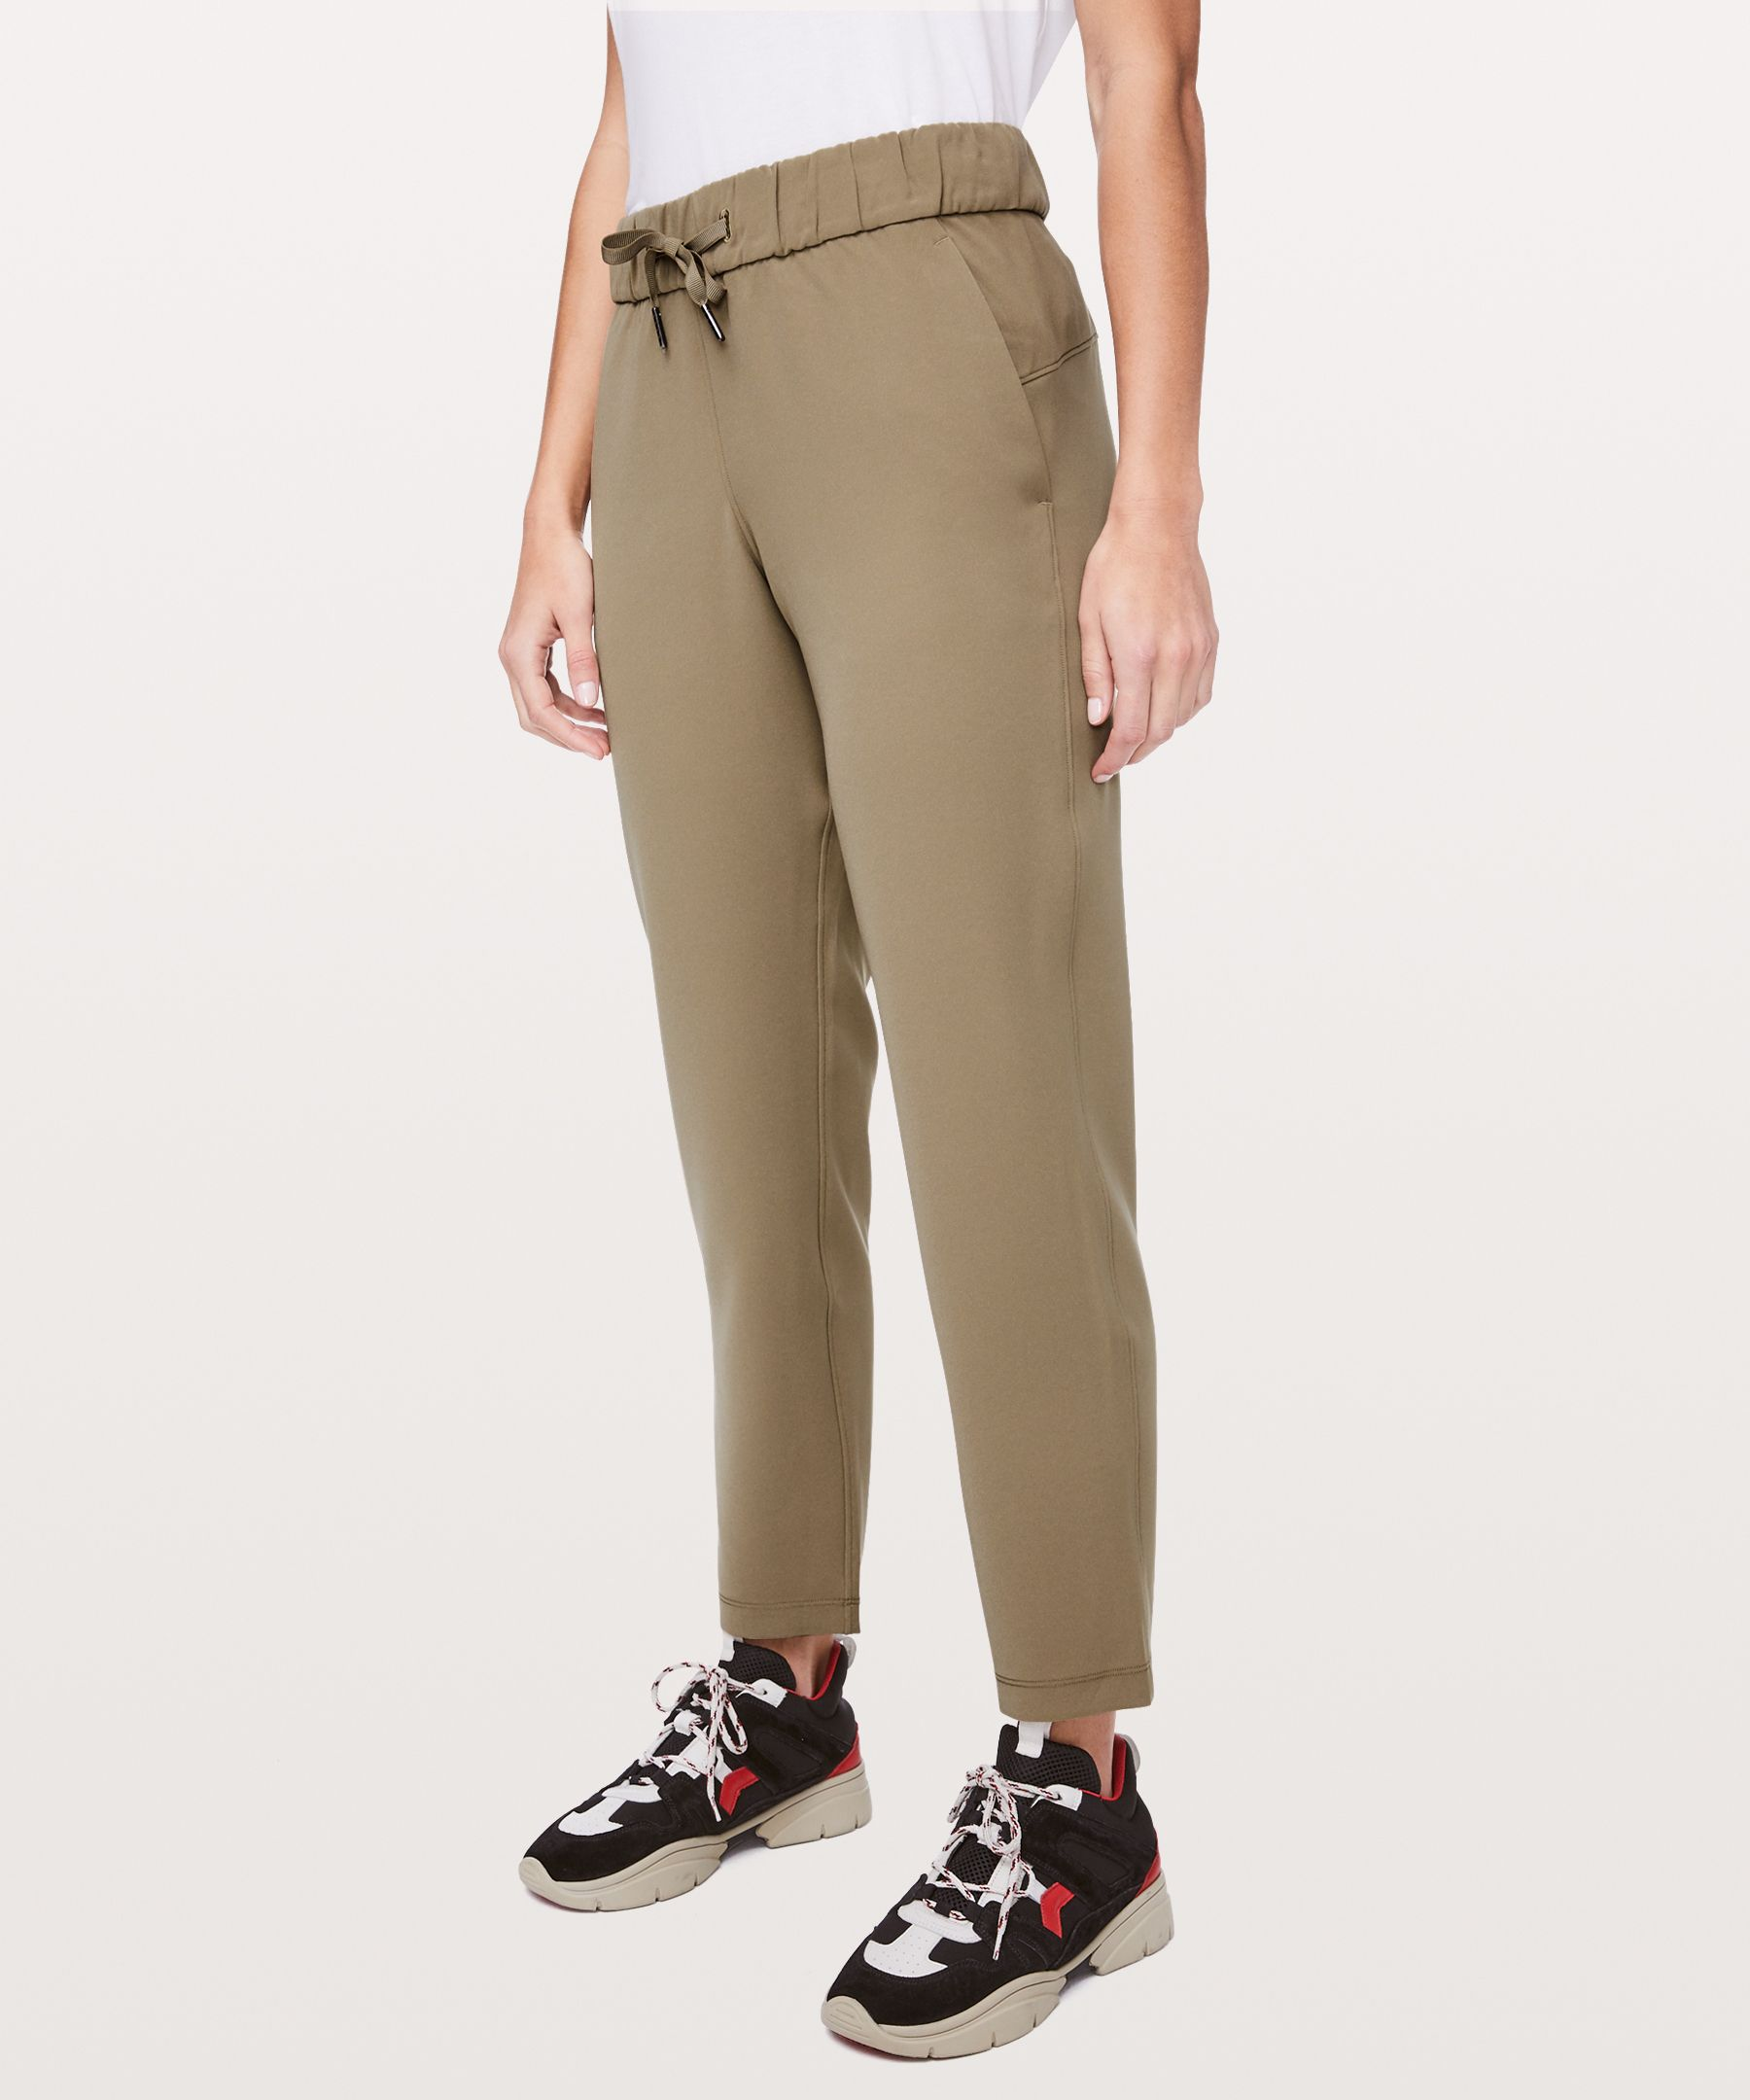 On The Fly 7 8 Pant Woven Women S Pants Lululemon Athletica